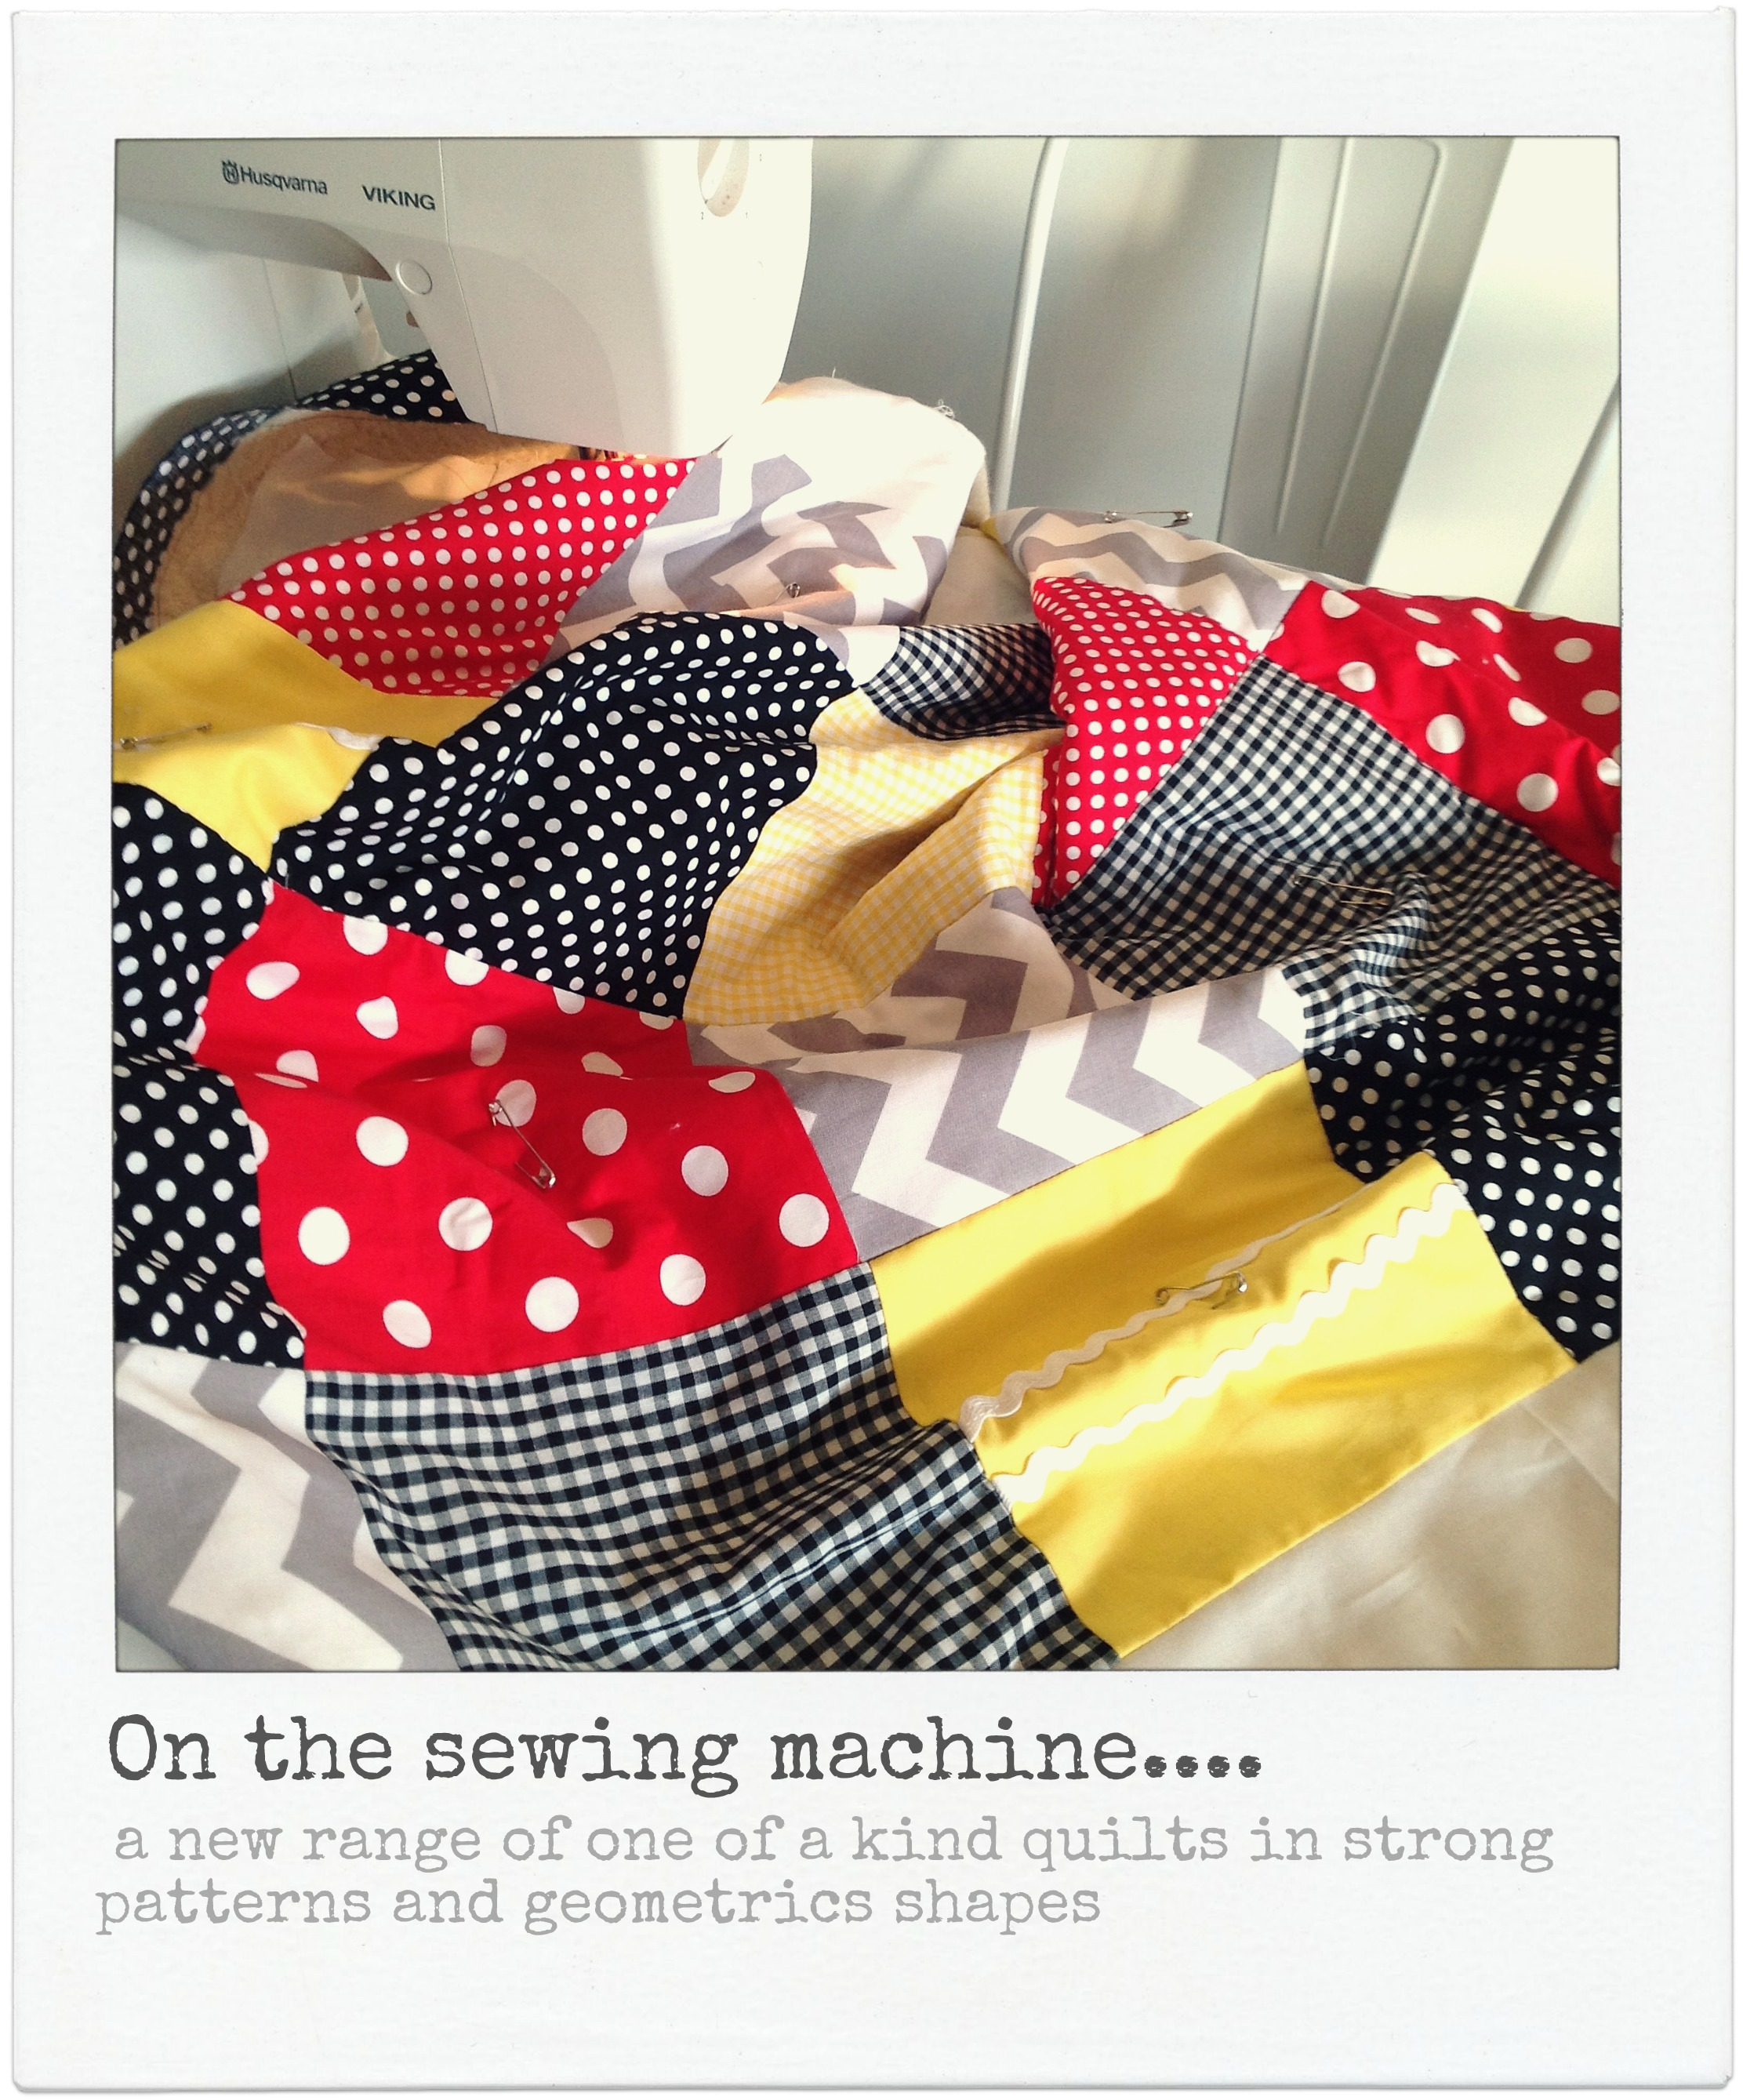 On the sewing machine....